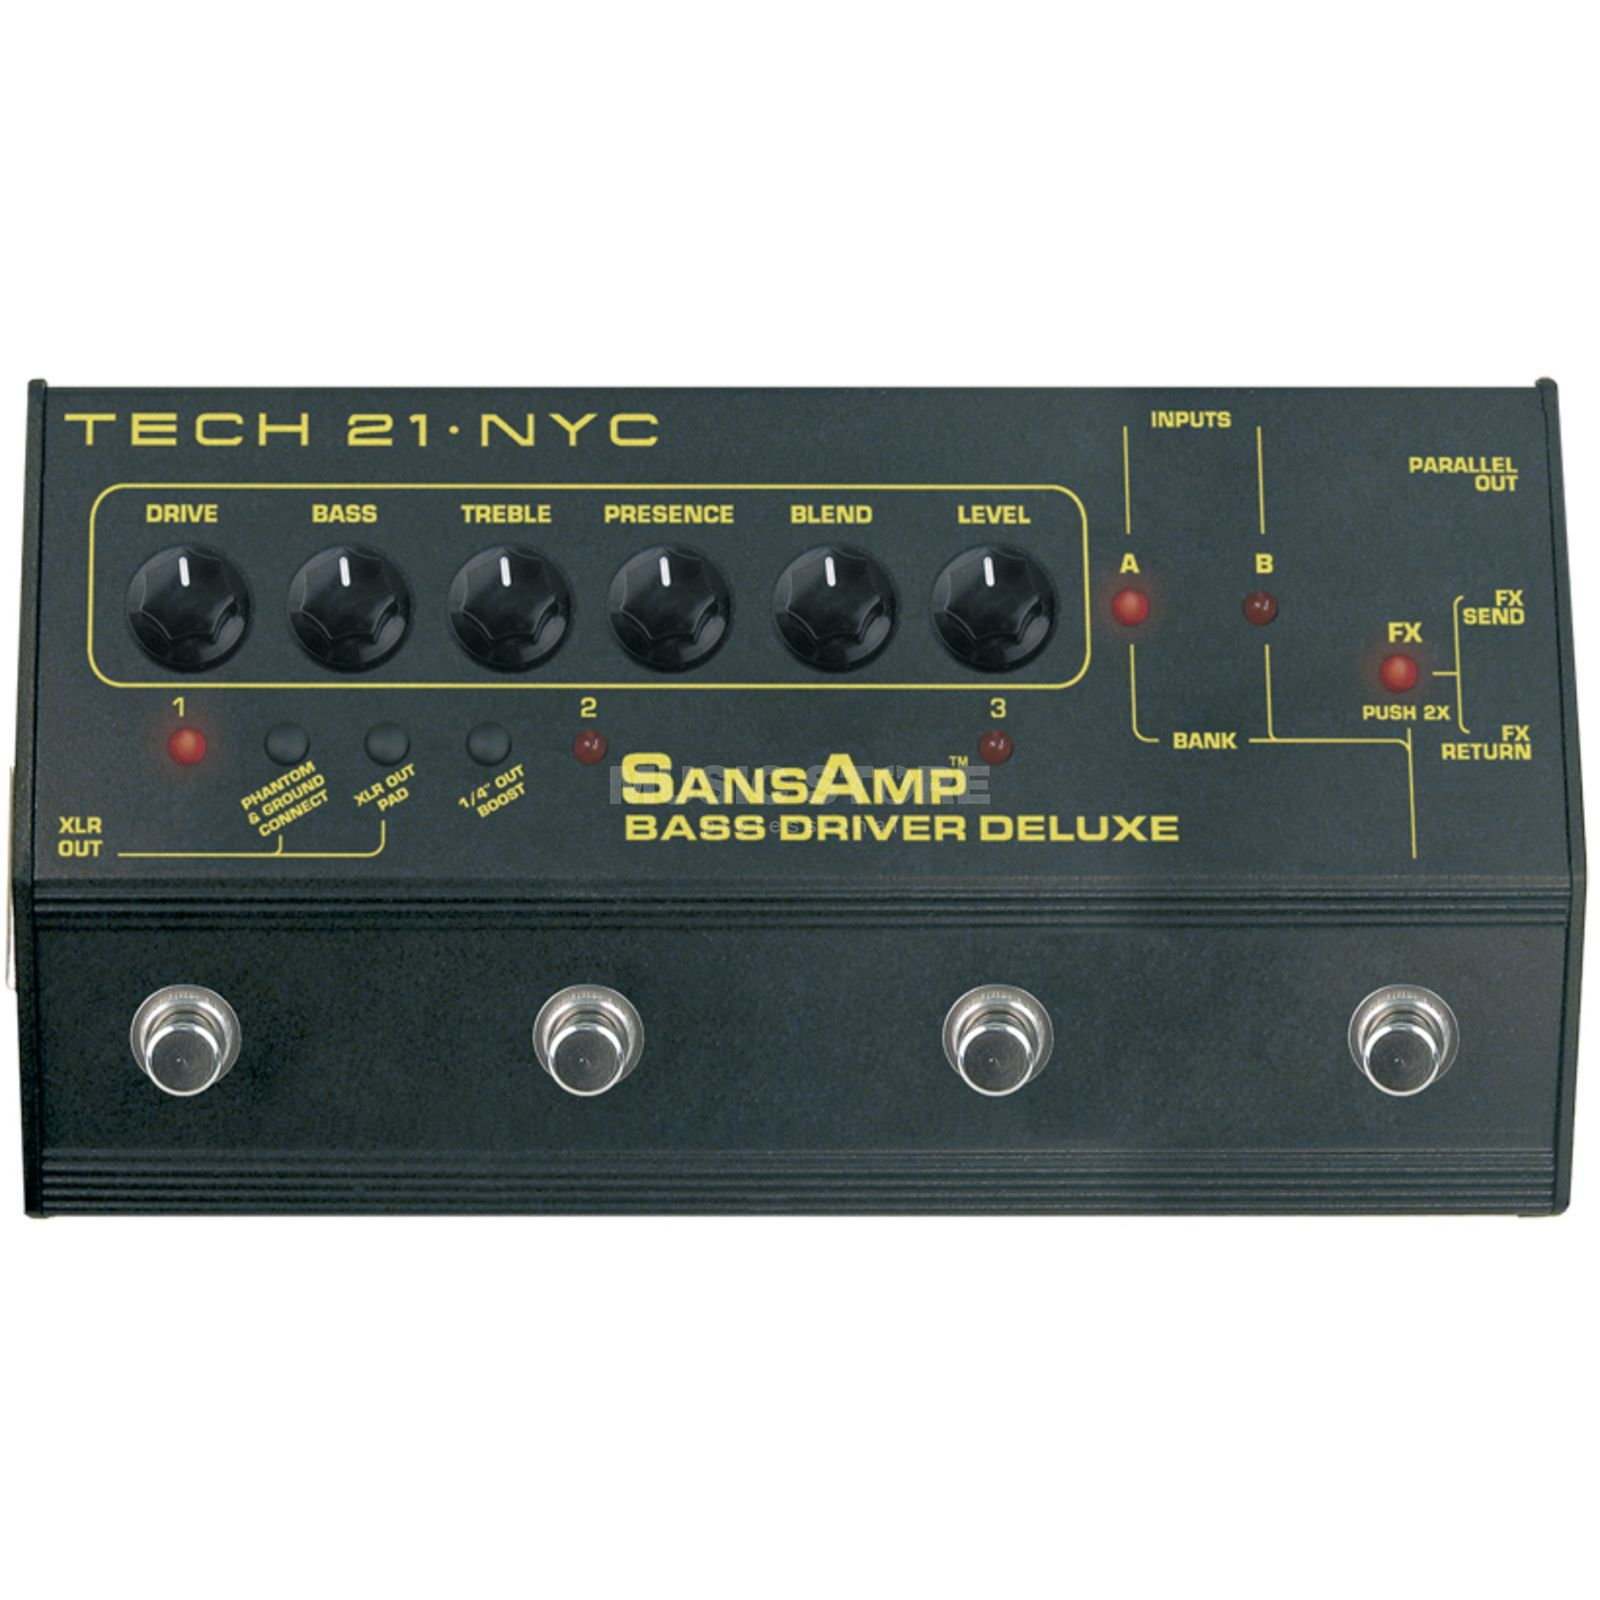 Tech 21 SansAmp Bass Driver Deluxe    Product Image